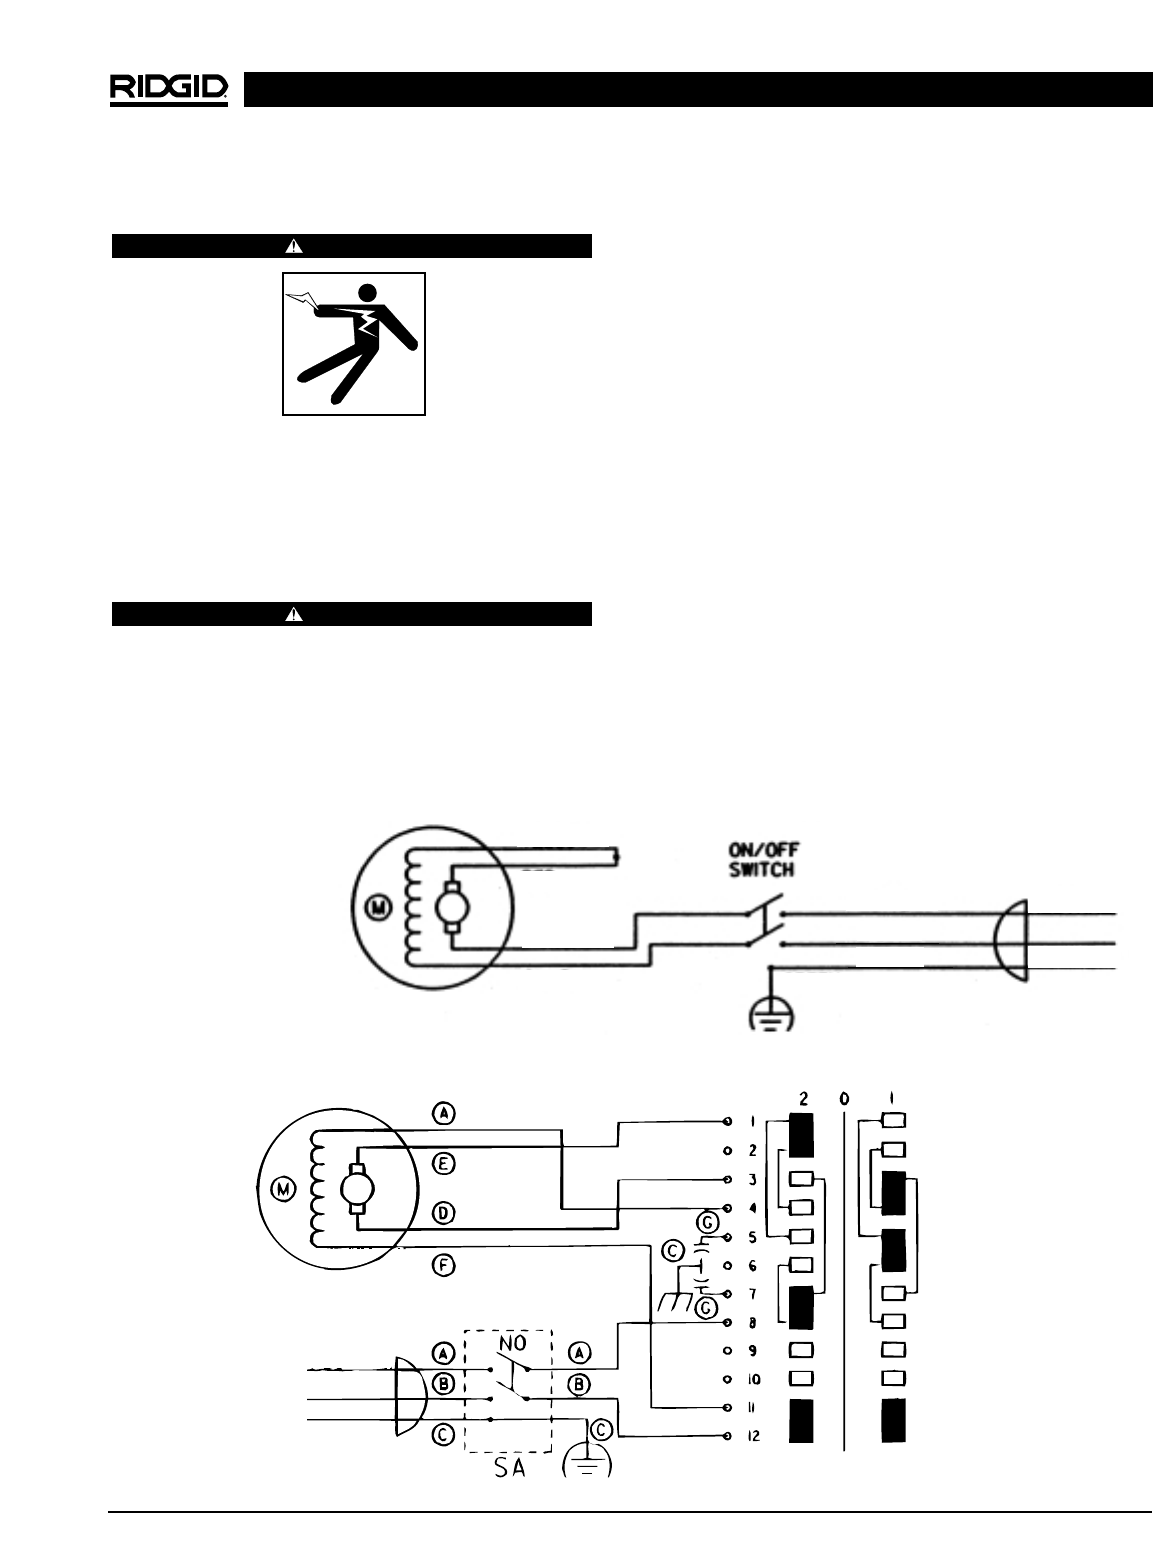 68b109bc 3c1f 445d 9958 08de9edaa37c bg13 page 19 of ridgid sewing machine 300 user guide manualsonline com ridgid 300 switch wiring diagram at crackthecode.co